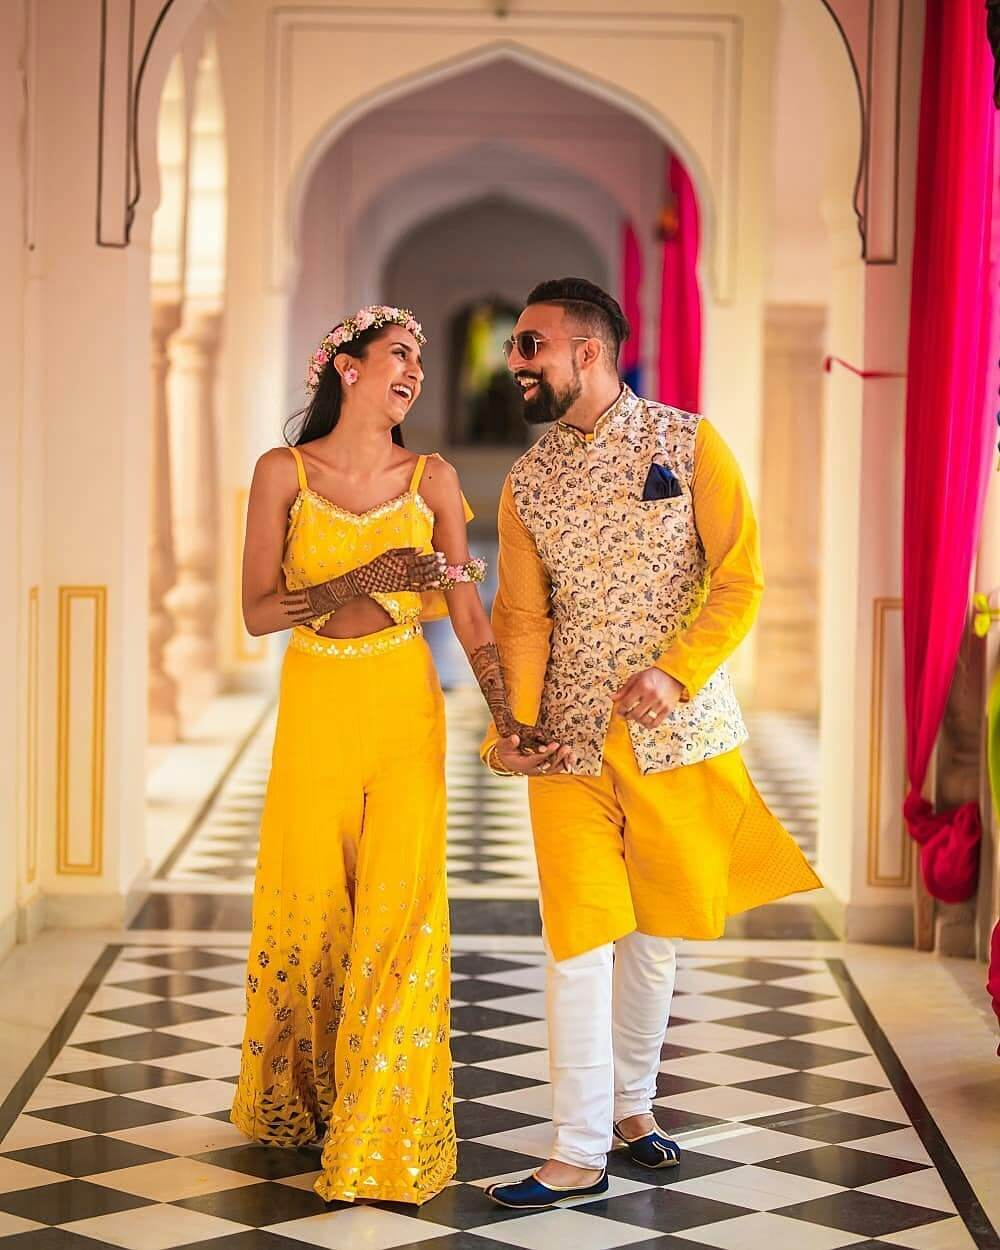 Yellow two piece bridal jumpsuit outfit for Haldi-Mehndi Ceremony